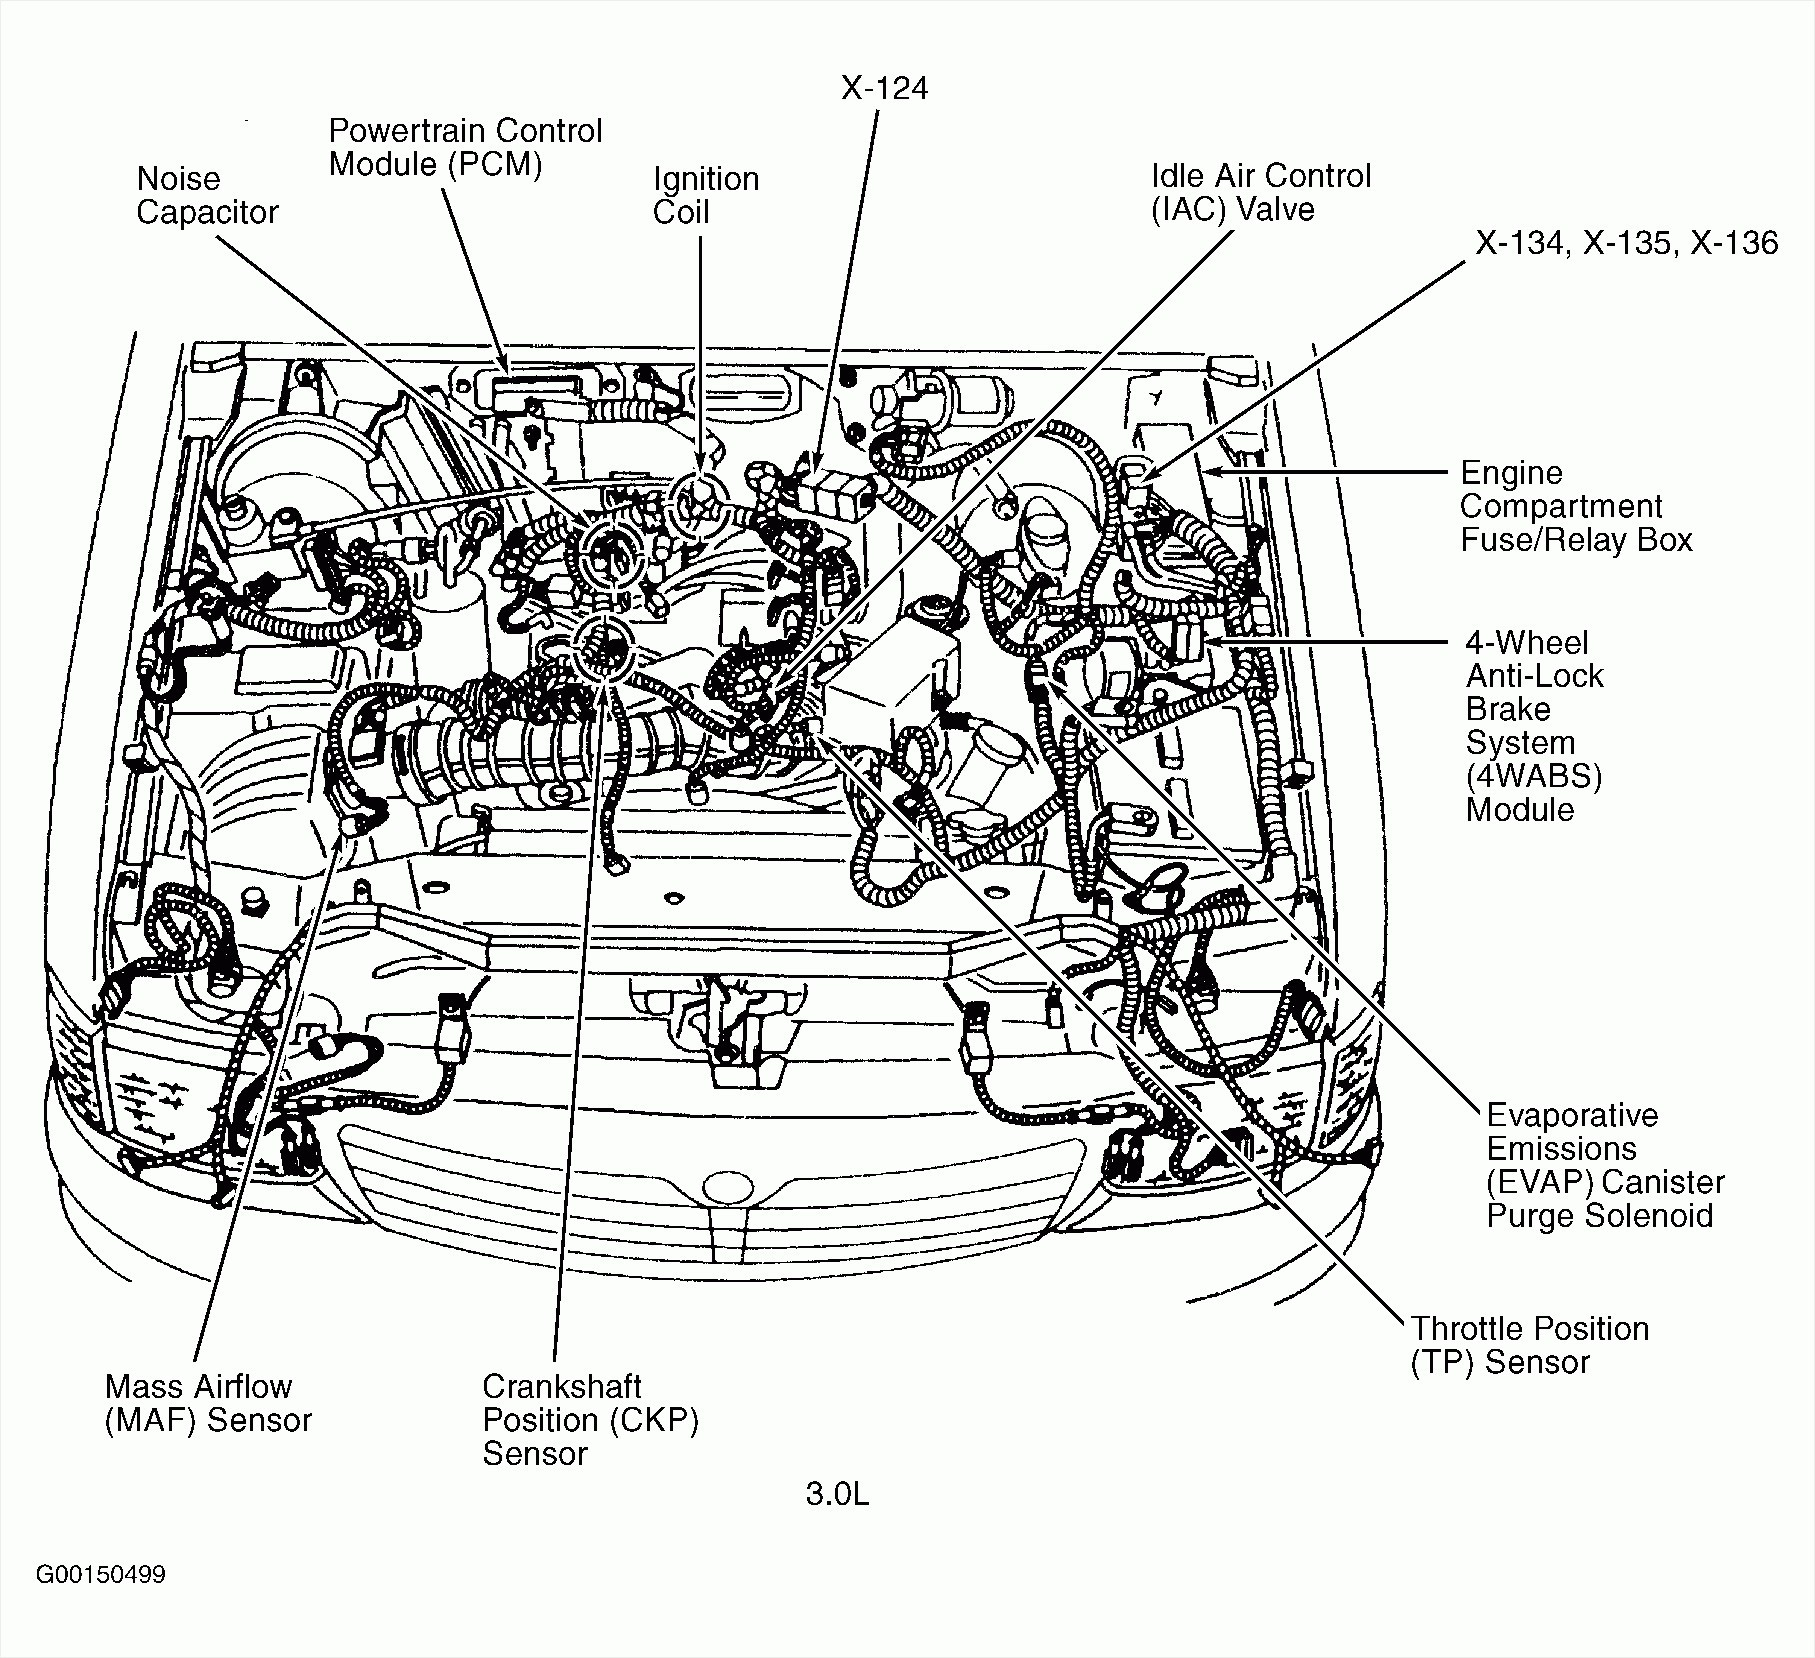 ford 4 2 liter v6 engine diagram ford ranger 3 0 v6 engine diagram ford wiring diagrams instructions of ford 4 2 liter v6 engine diagram buick 3 8 engine diagram wiring diagram data